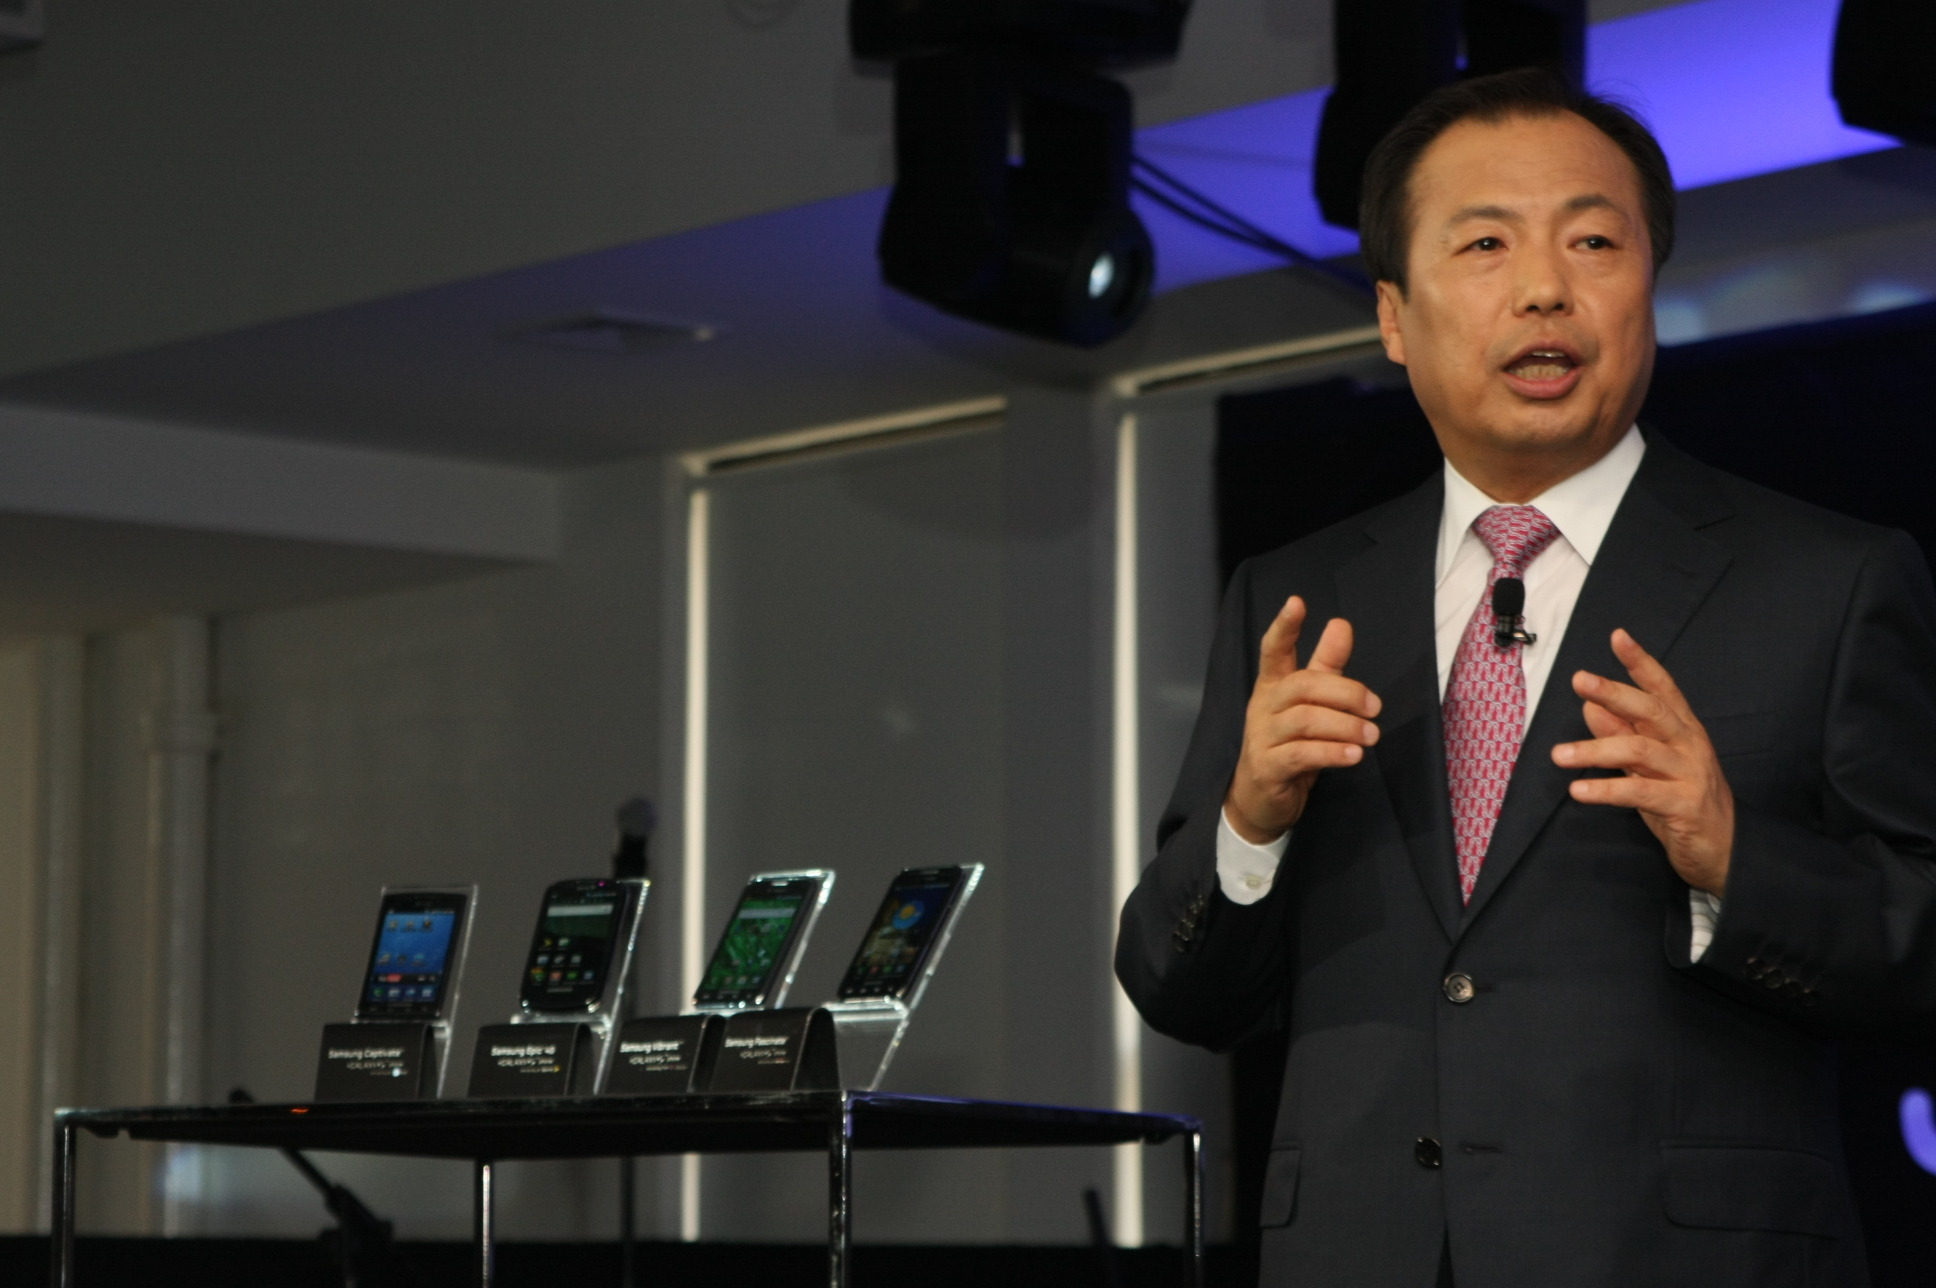 Samsung's J.K. Shin unveils the Galaxy S series at an event New York.